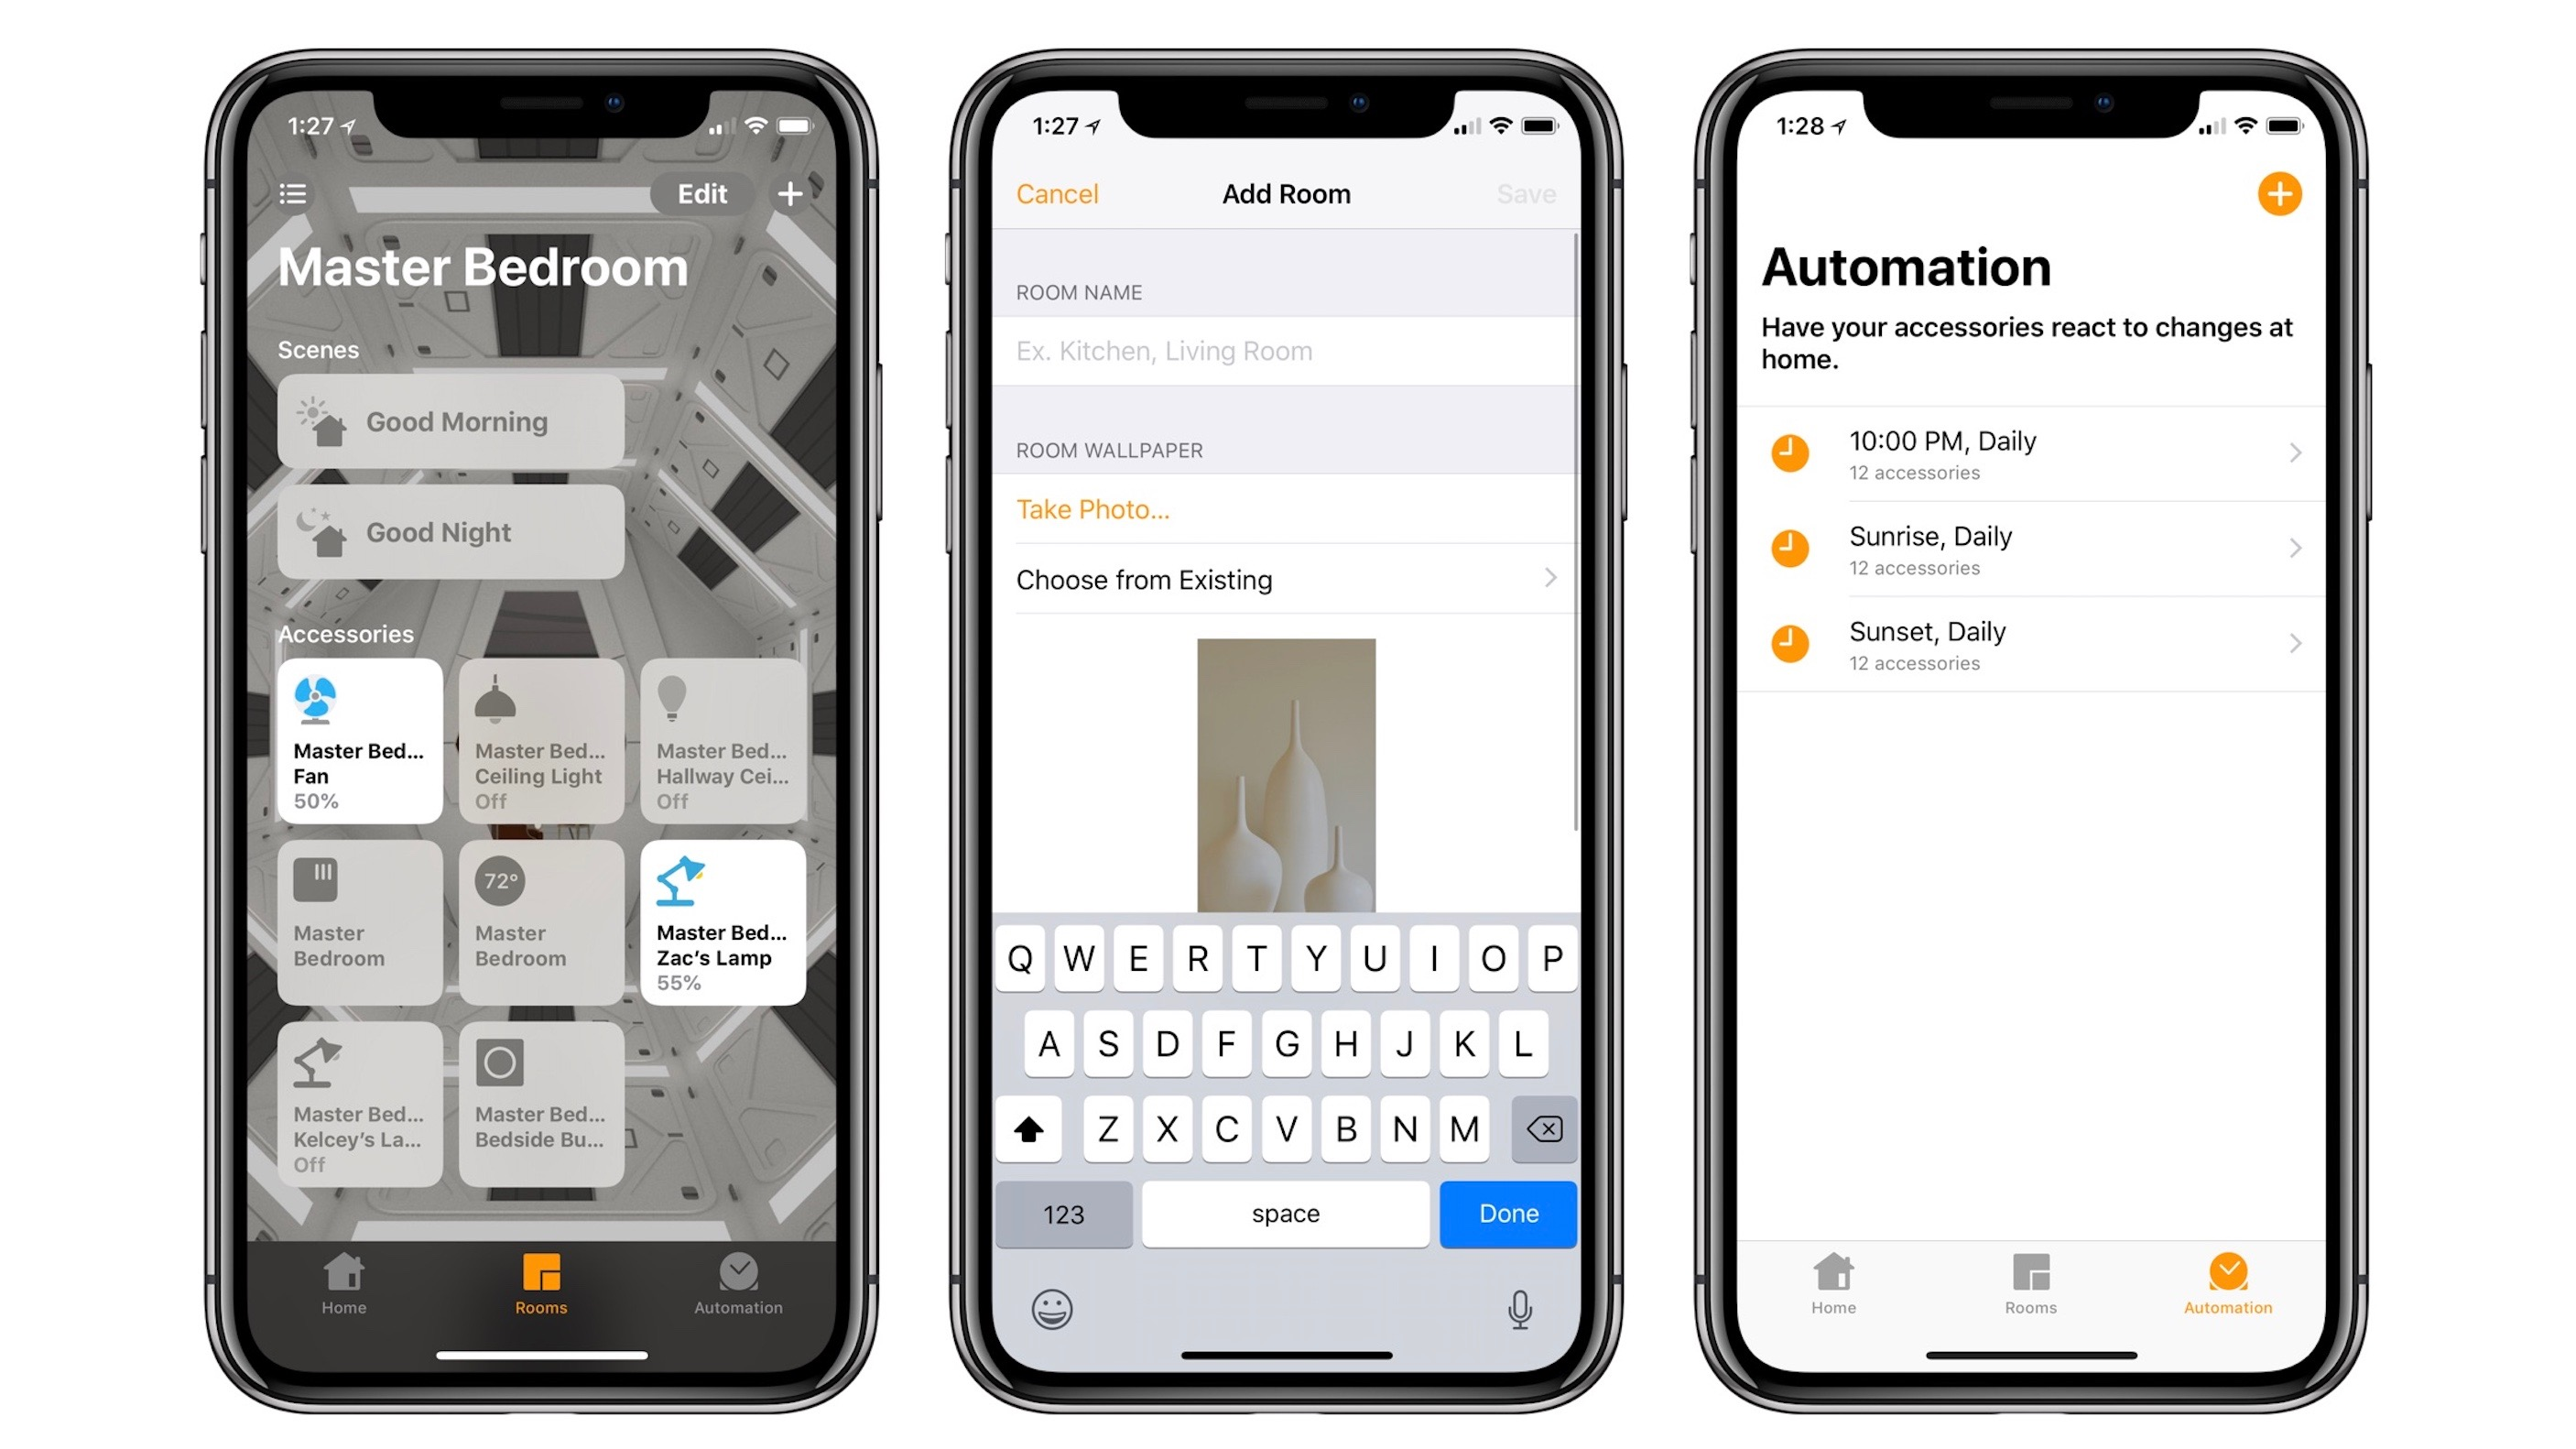 c8de2f8d538 HomeKit Weekly: Getting started with Apple's Home app on iPhone ...